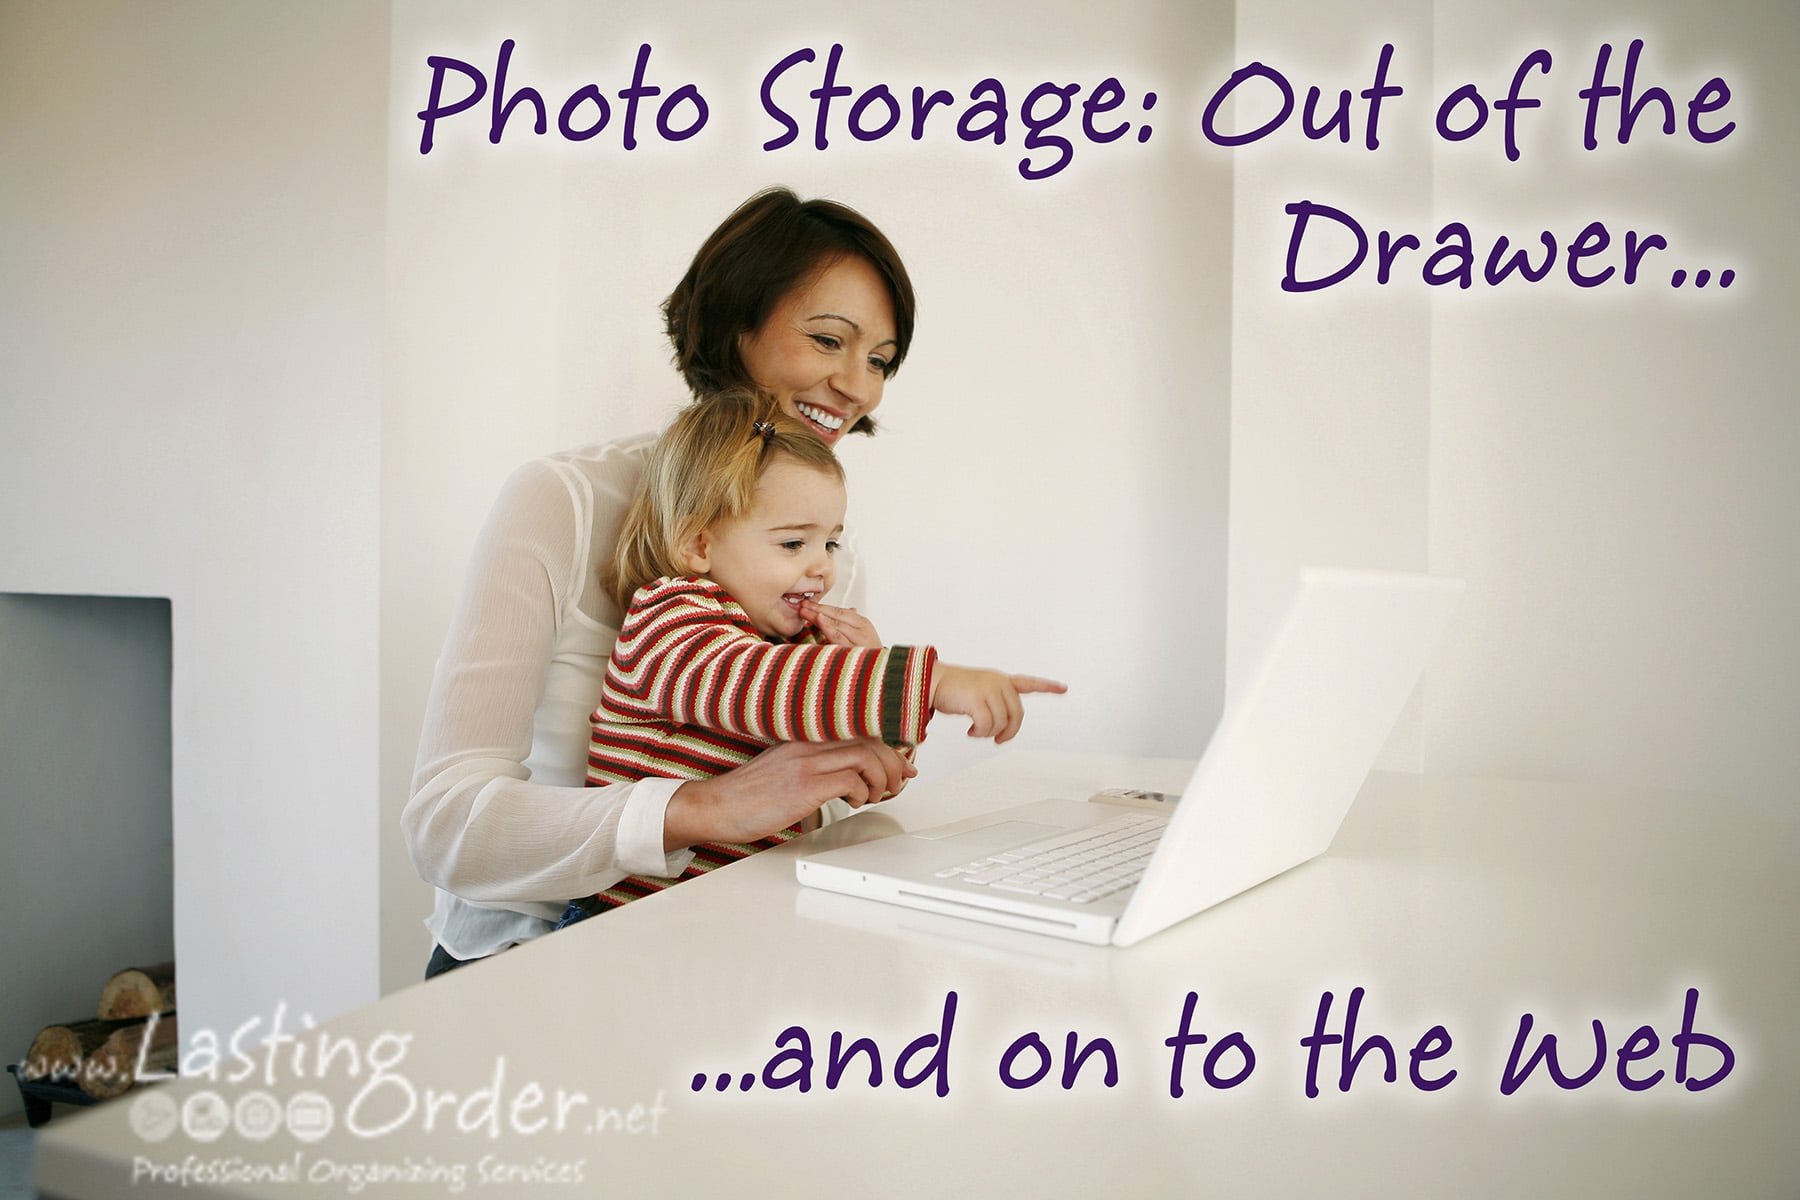 Photo Storage: Out of the Drawer and on to the Web